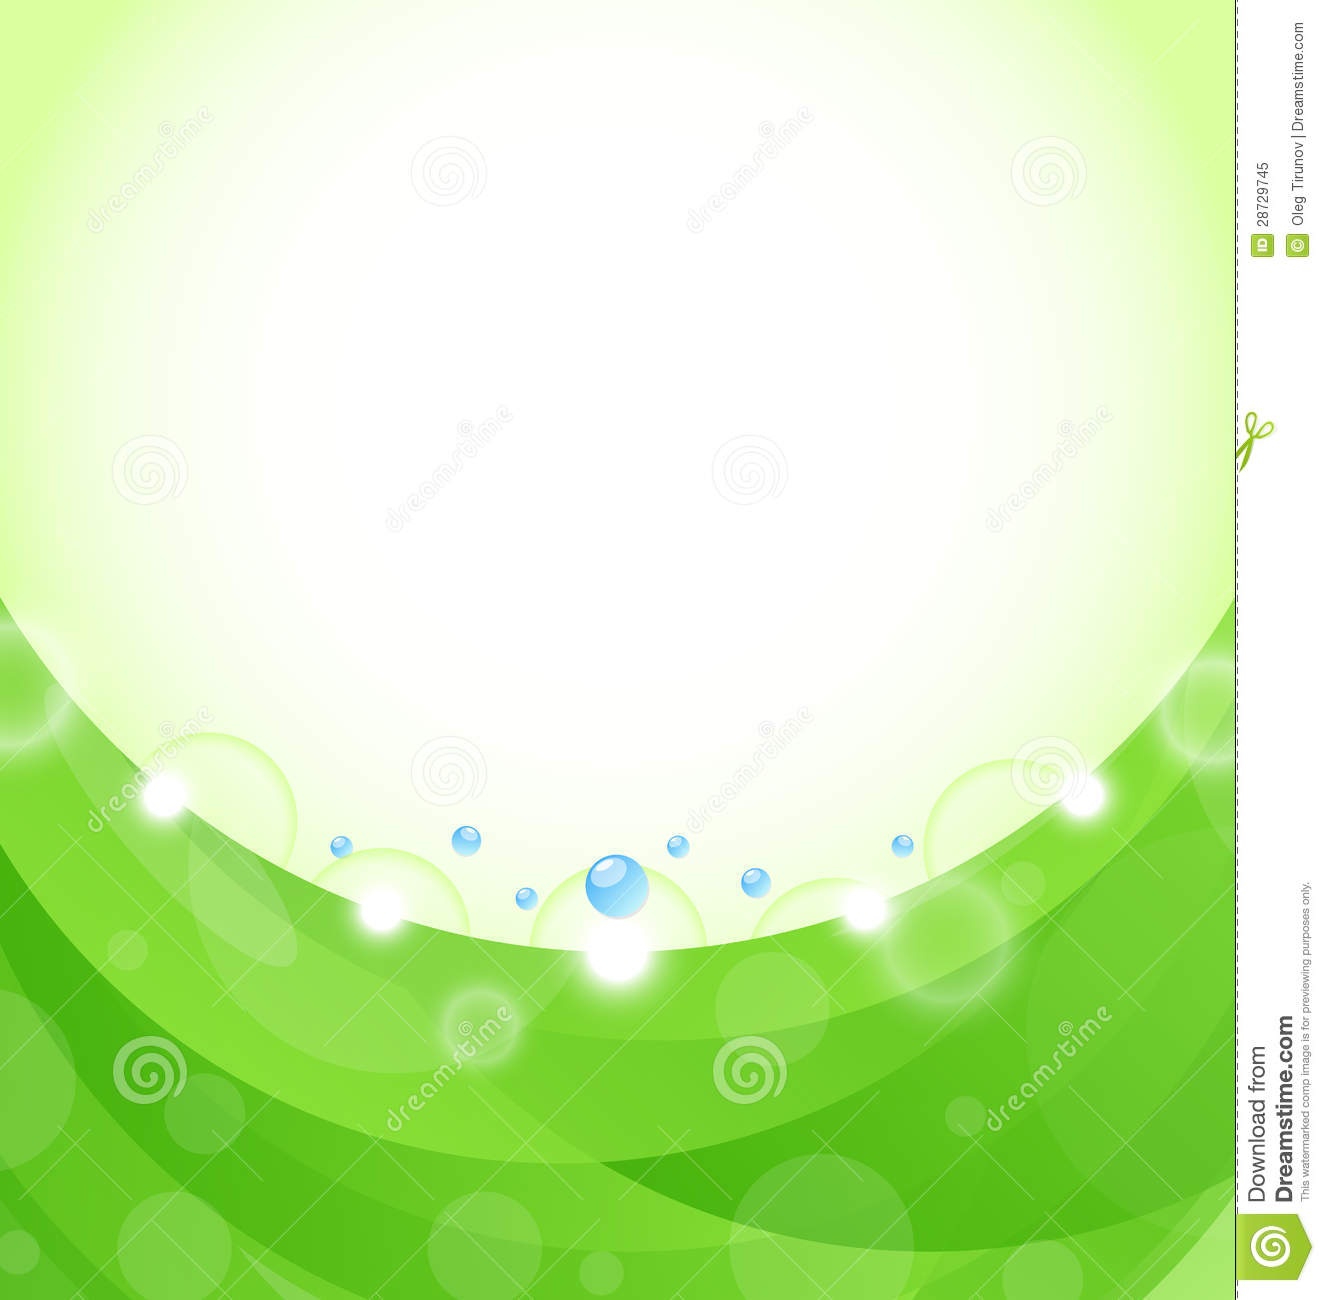 eco nature background, design template stock vector - illustration